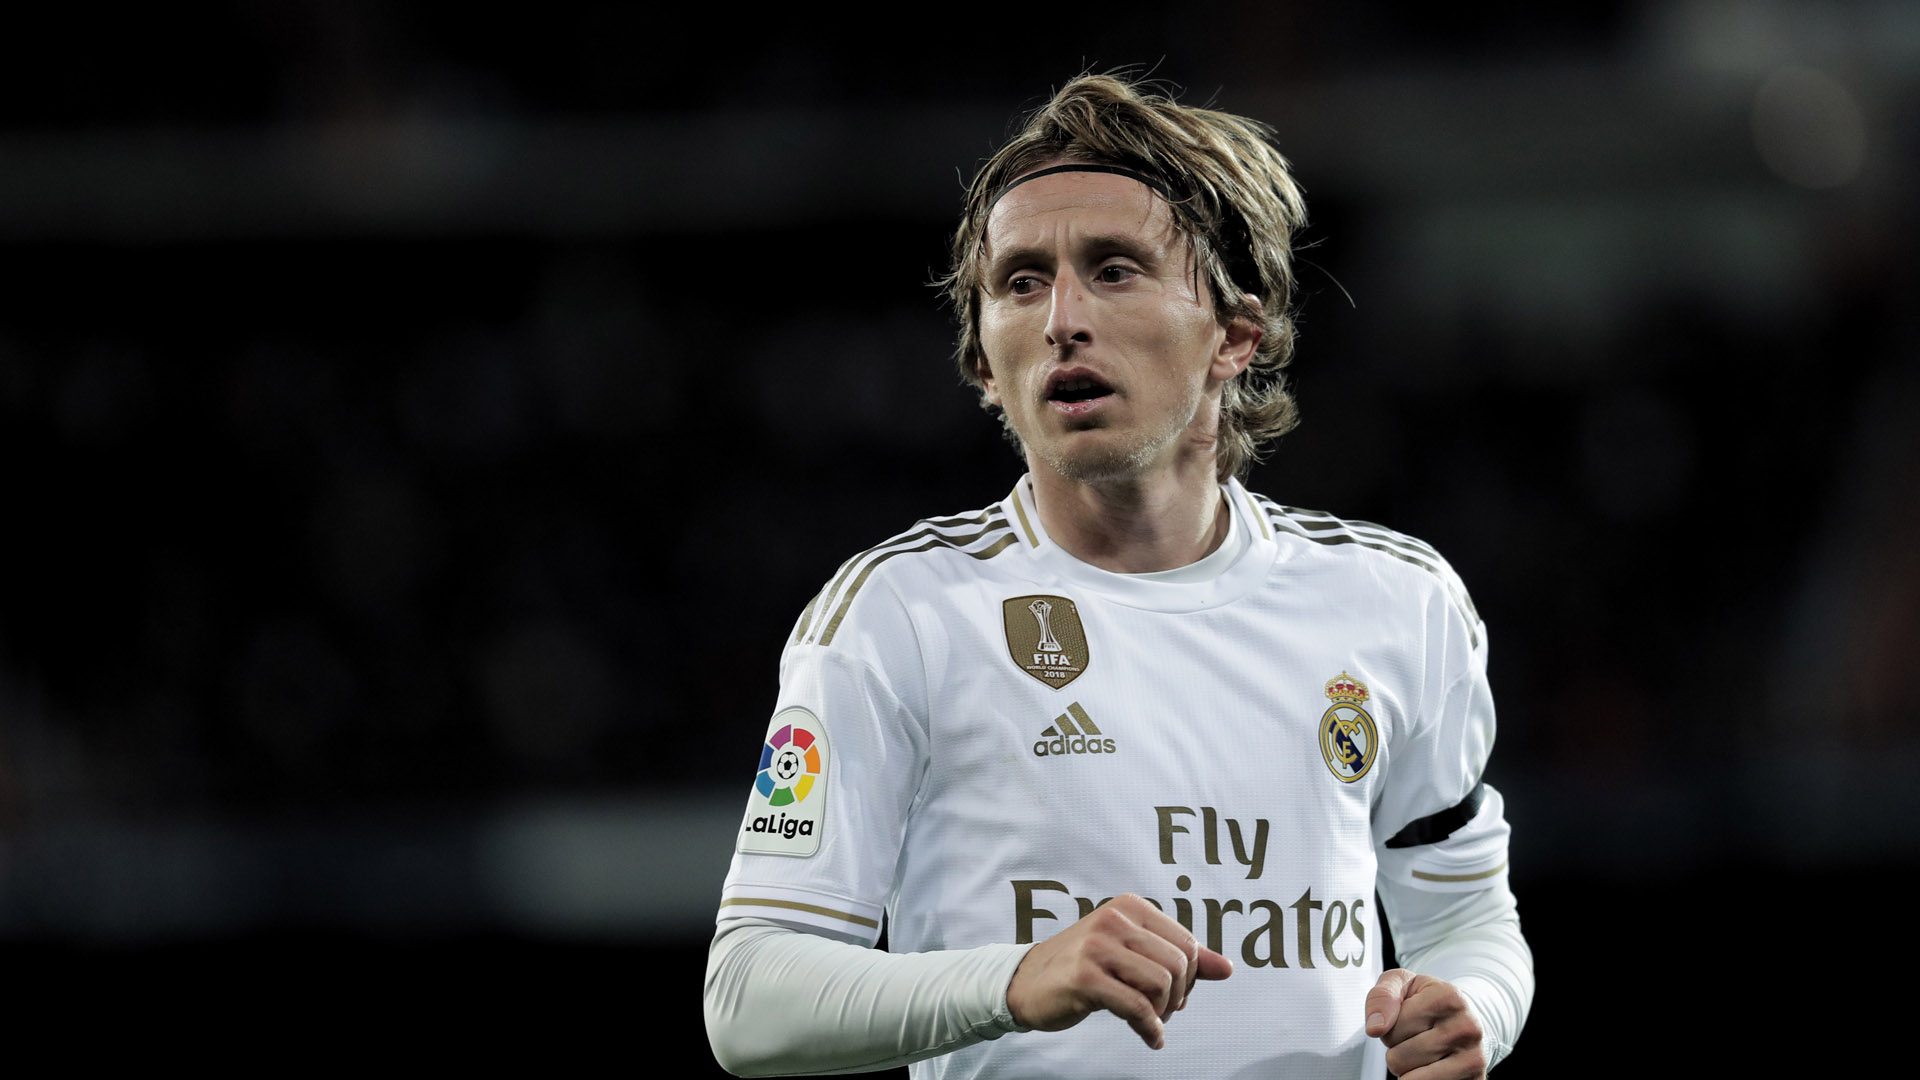 Football News, Live Scores, Results & Transfers | Goal.comBericht: Luka Modric will bei Real Madrid bleiben